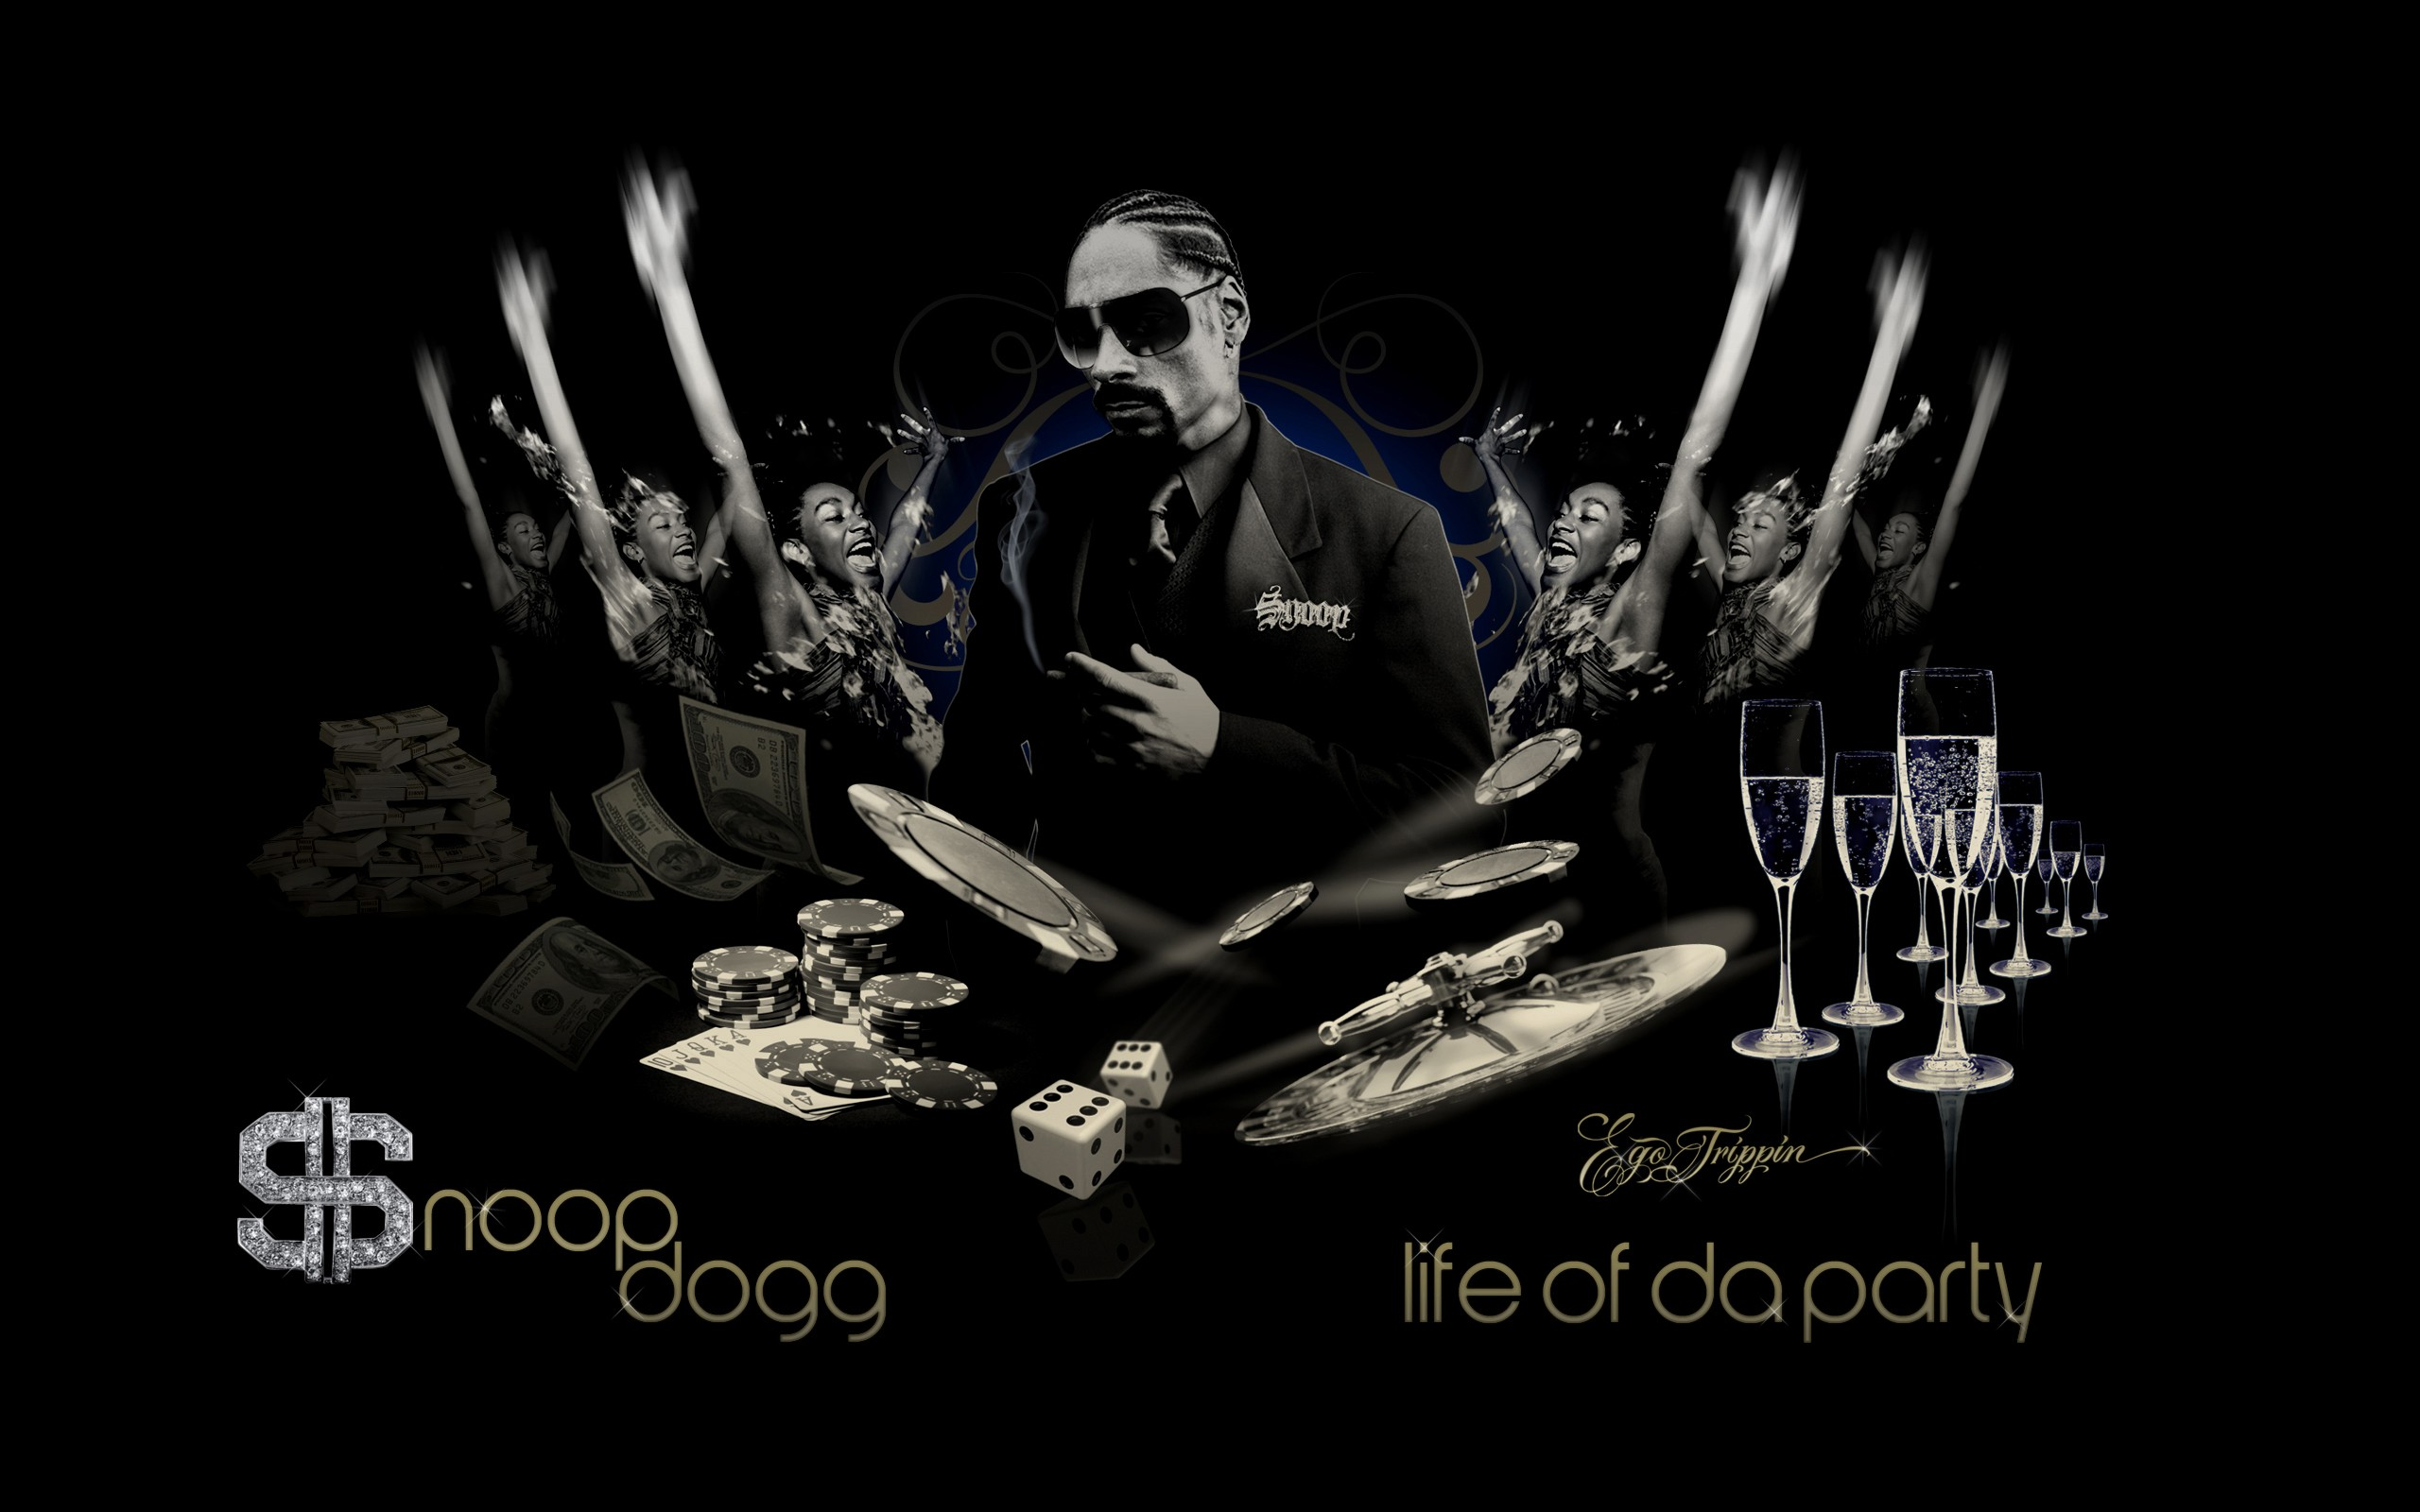 Life Snoop Dogg Wallpapers Gangsta Life Snoop Dogg HD Wallpapers 2560x1600